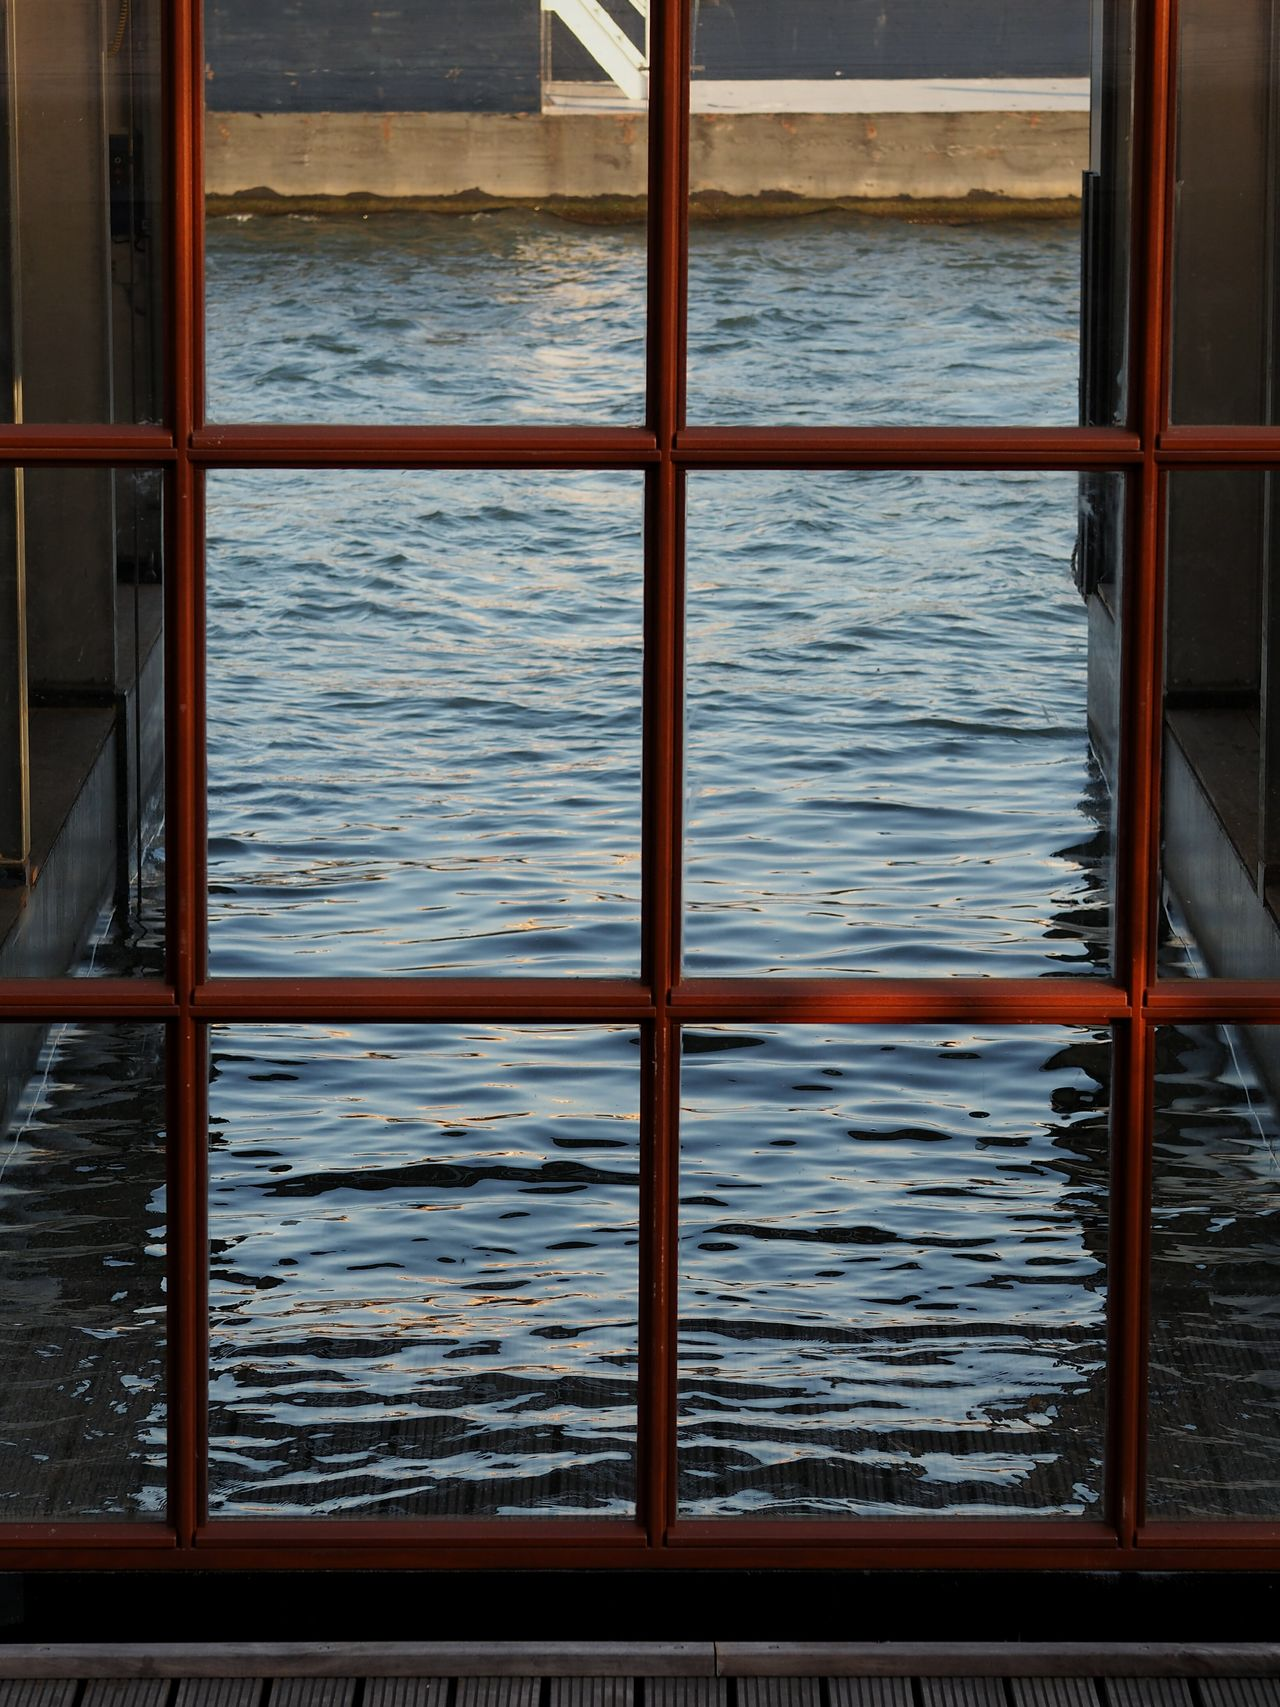 Water No People Day Outdoors Built Structure Boats Frame Windows Building Exterior Photo Taking Photos Reflections Rippled Water Ripples In The Water Empty Boathouse